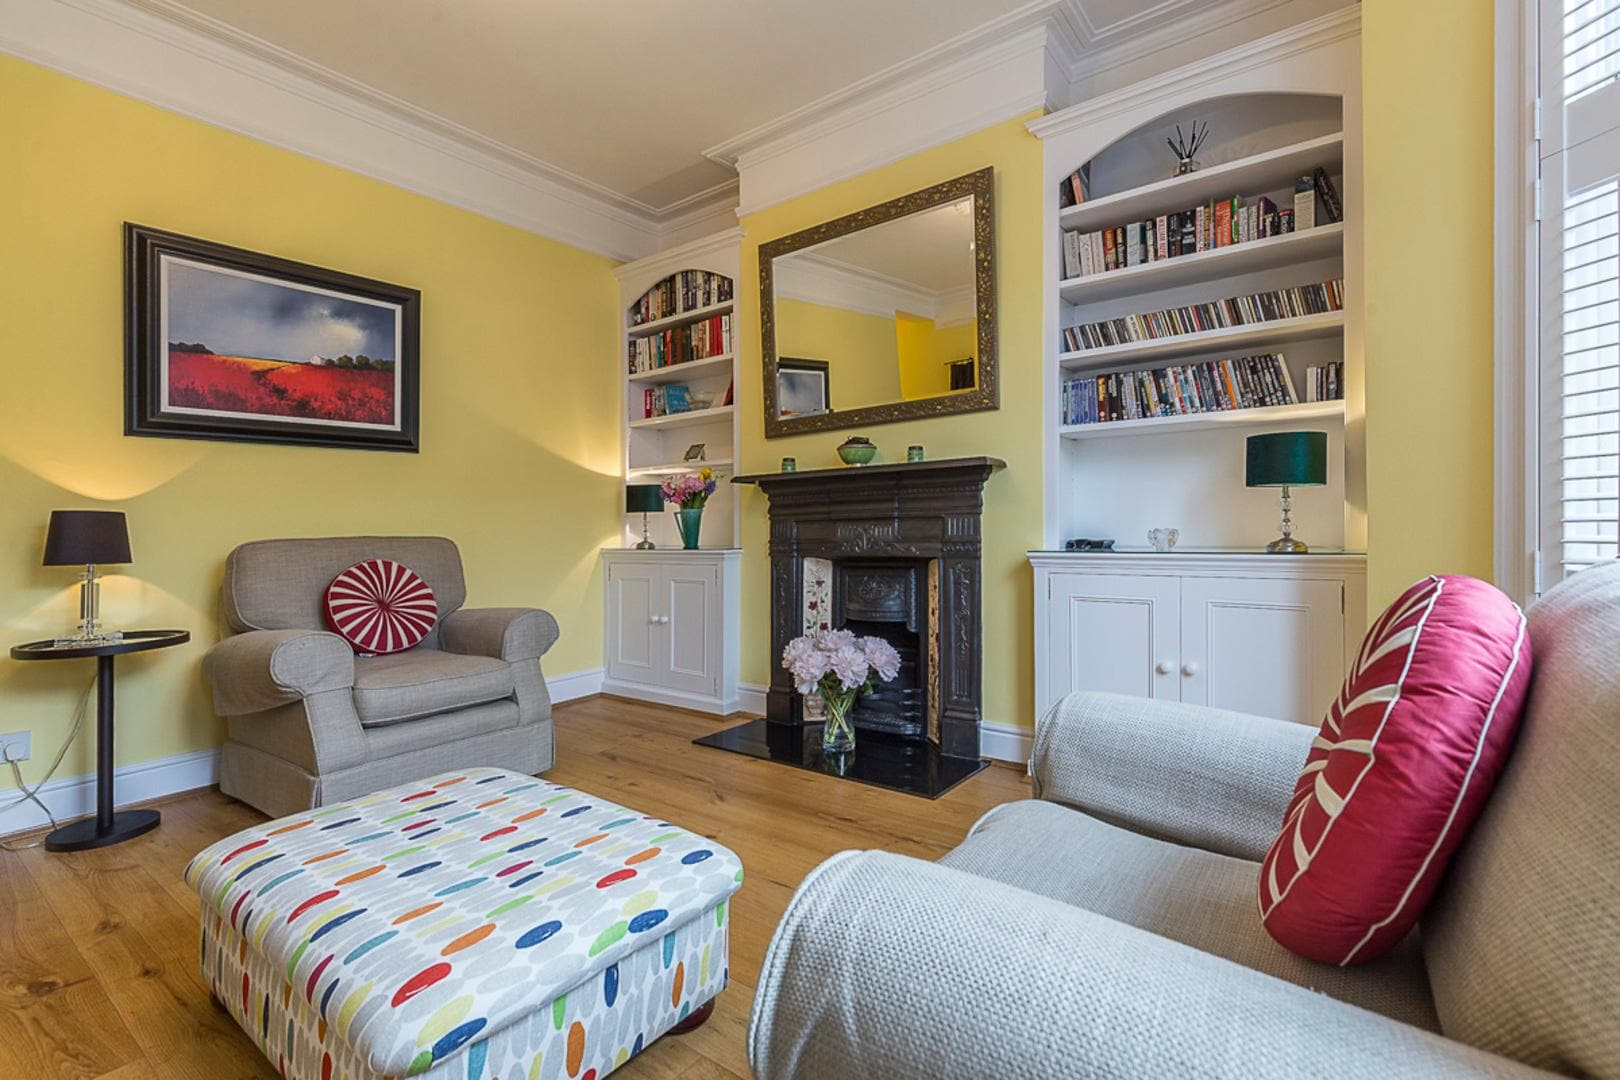 Property Image 2 - Colourful Garden Flat in Trendy Fulham Neighbourhood